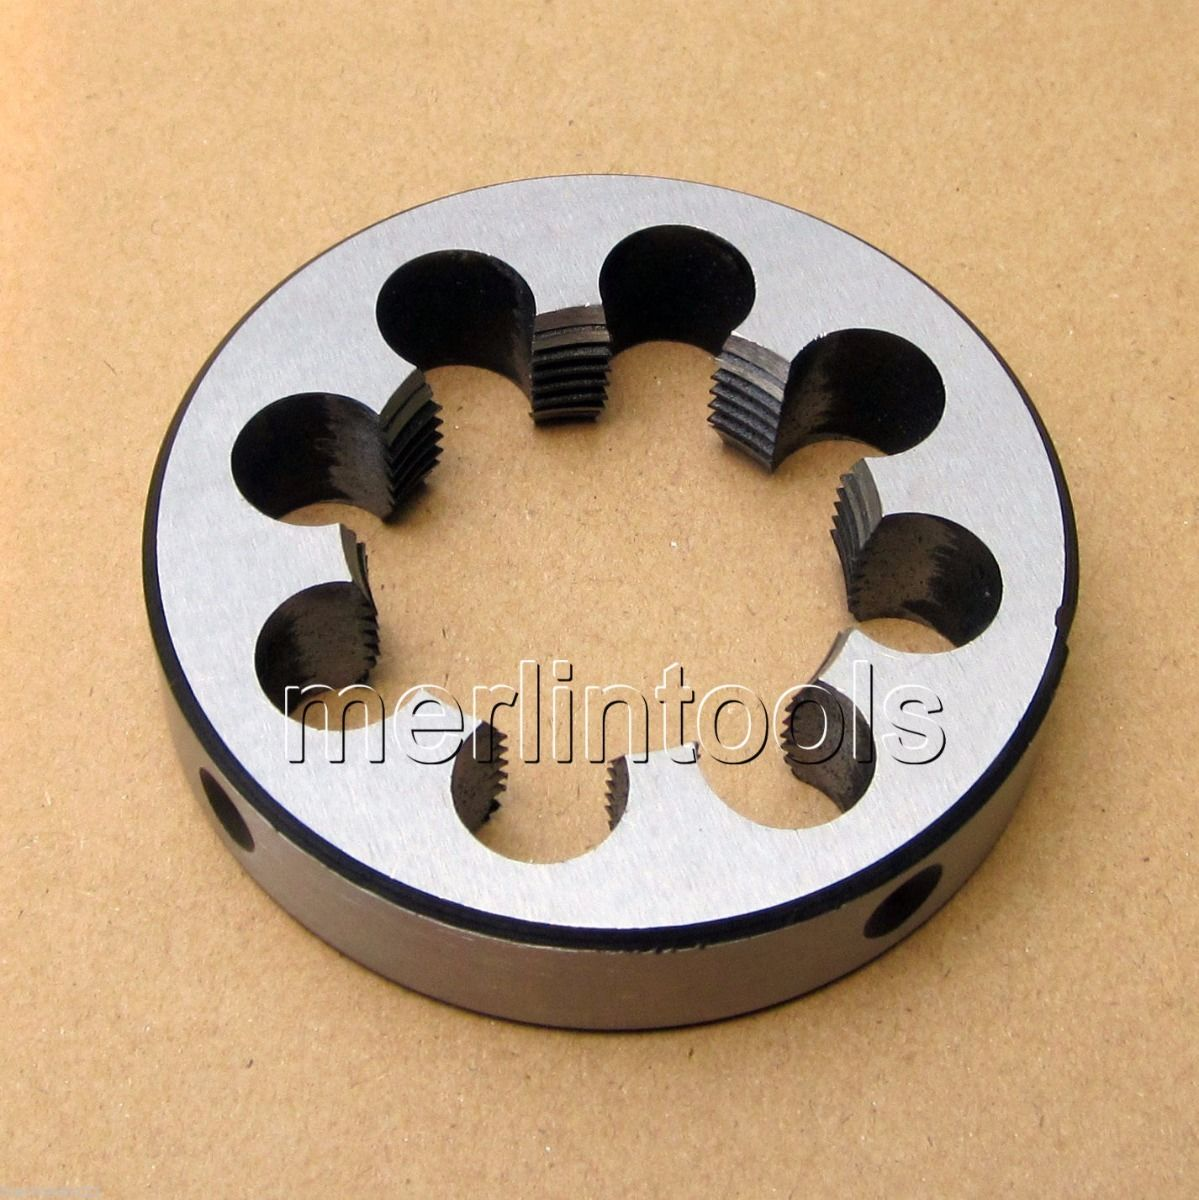 45mm x 1 Metric Right hand Die M45 x 1.0mm Pitch 52mm x 2 metric right hand thread die m52 x 2 0mm pitch